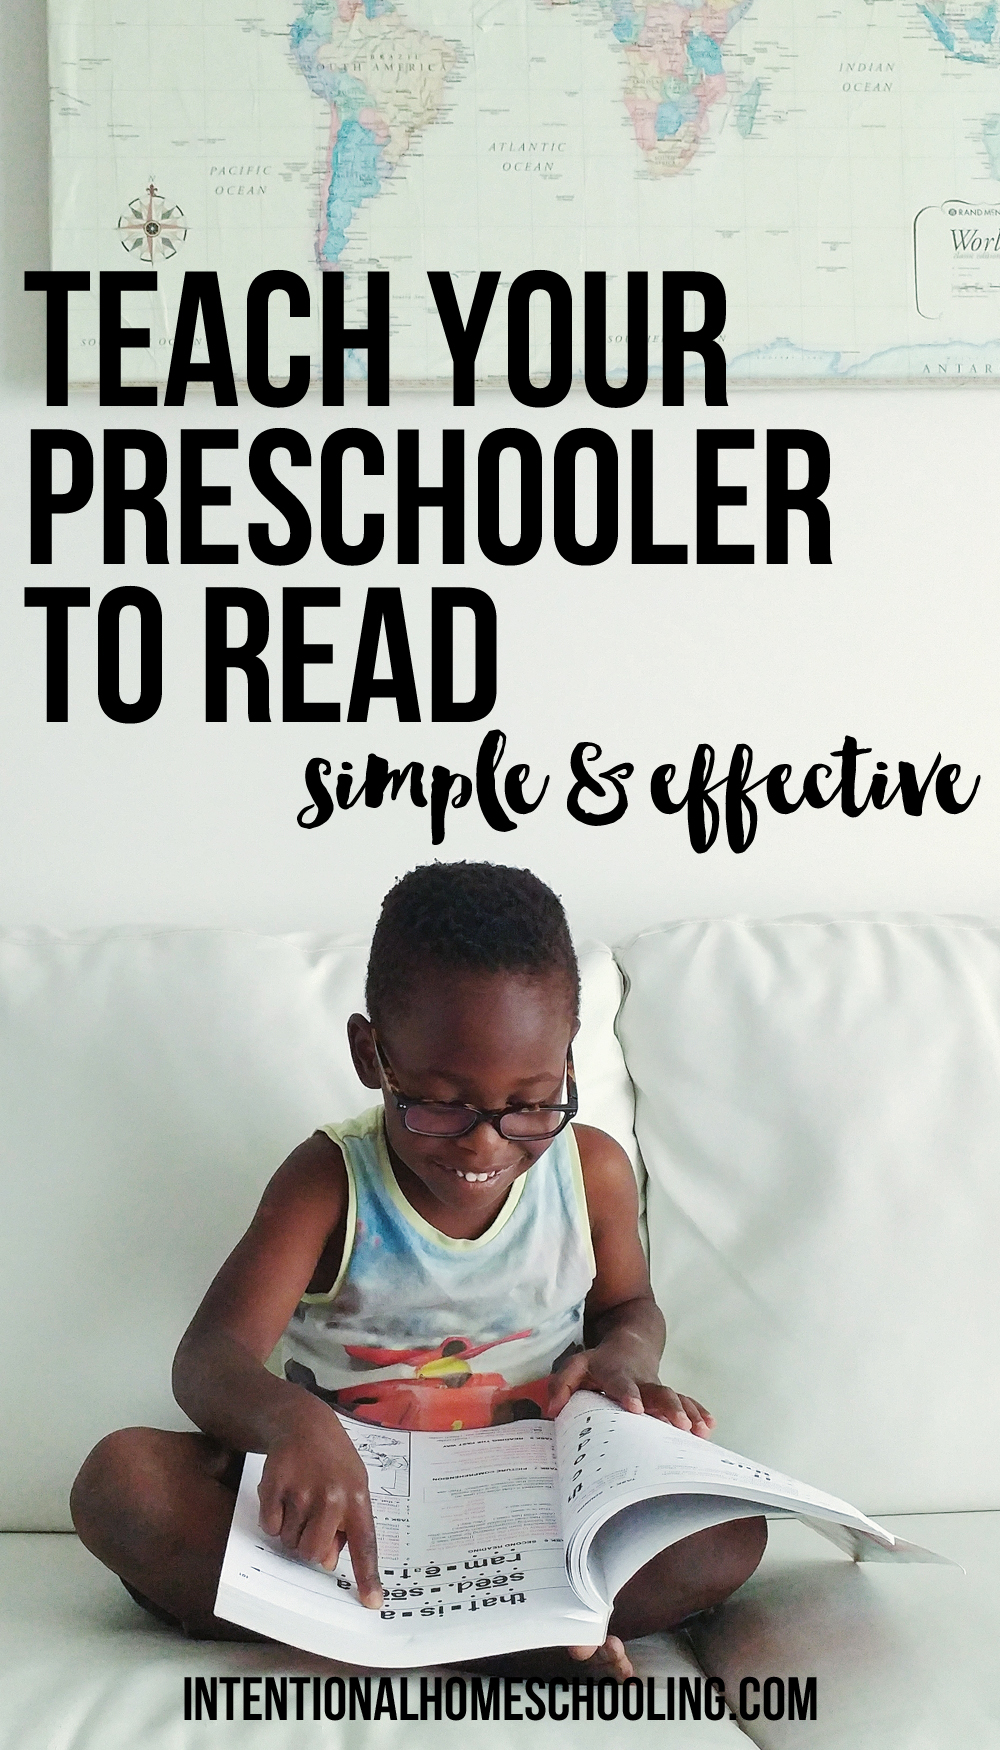 How to Teach Your Preschooler to Read